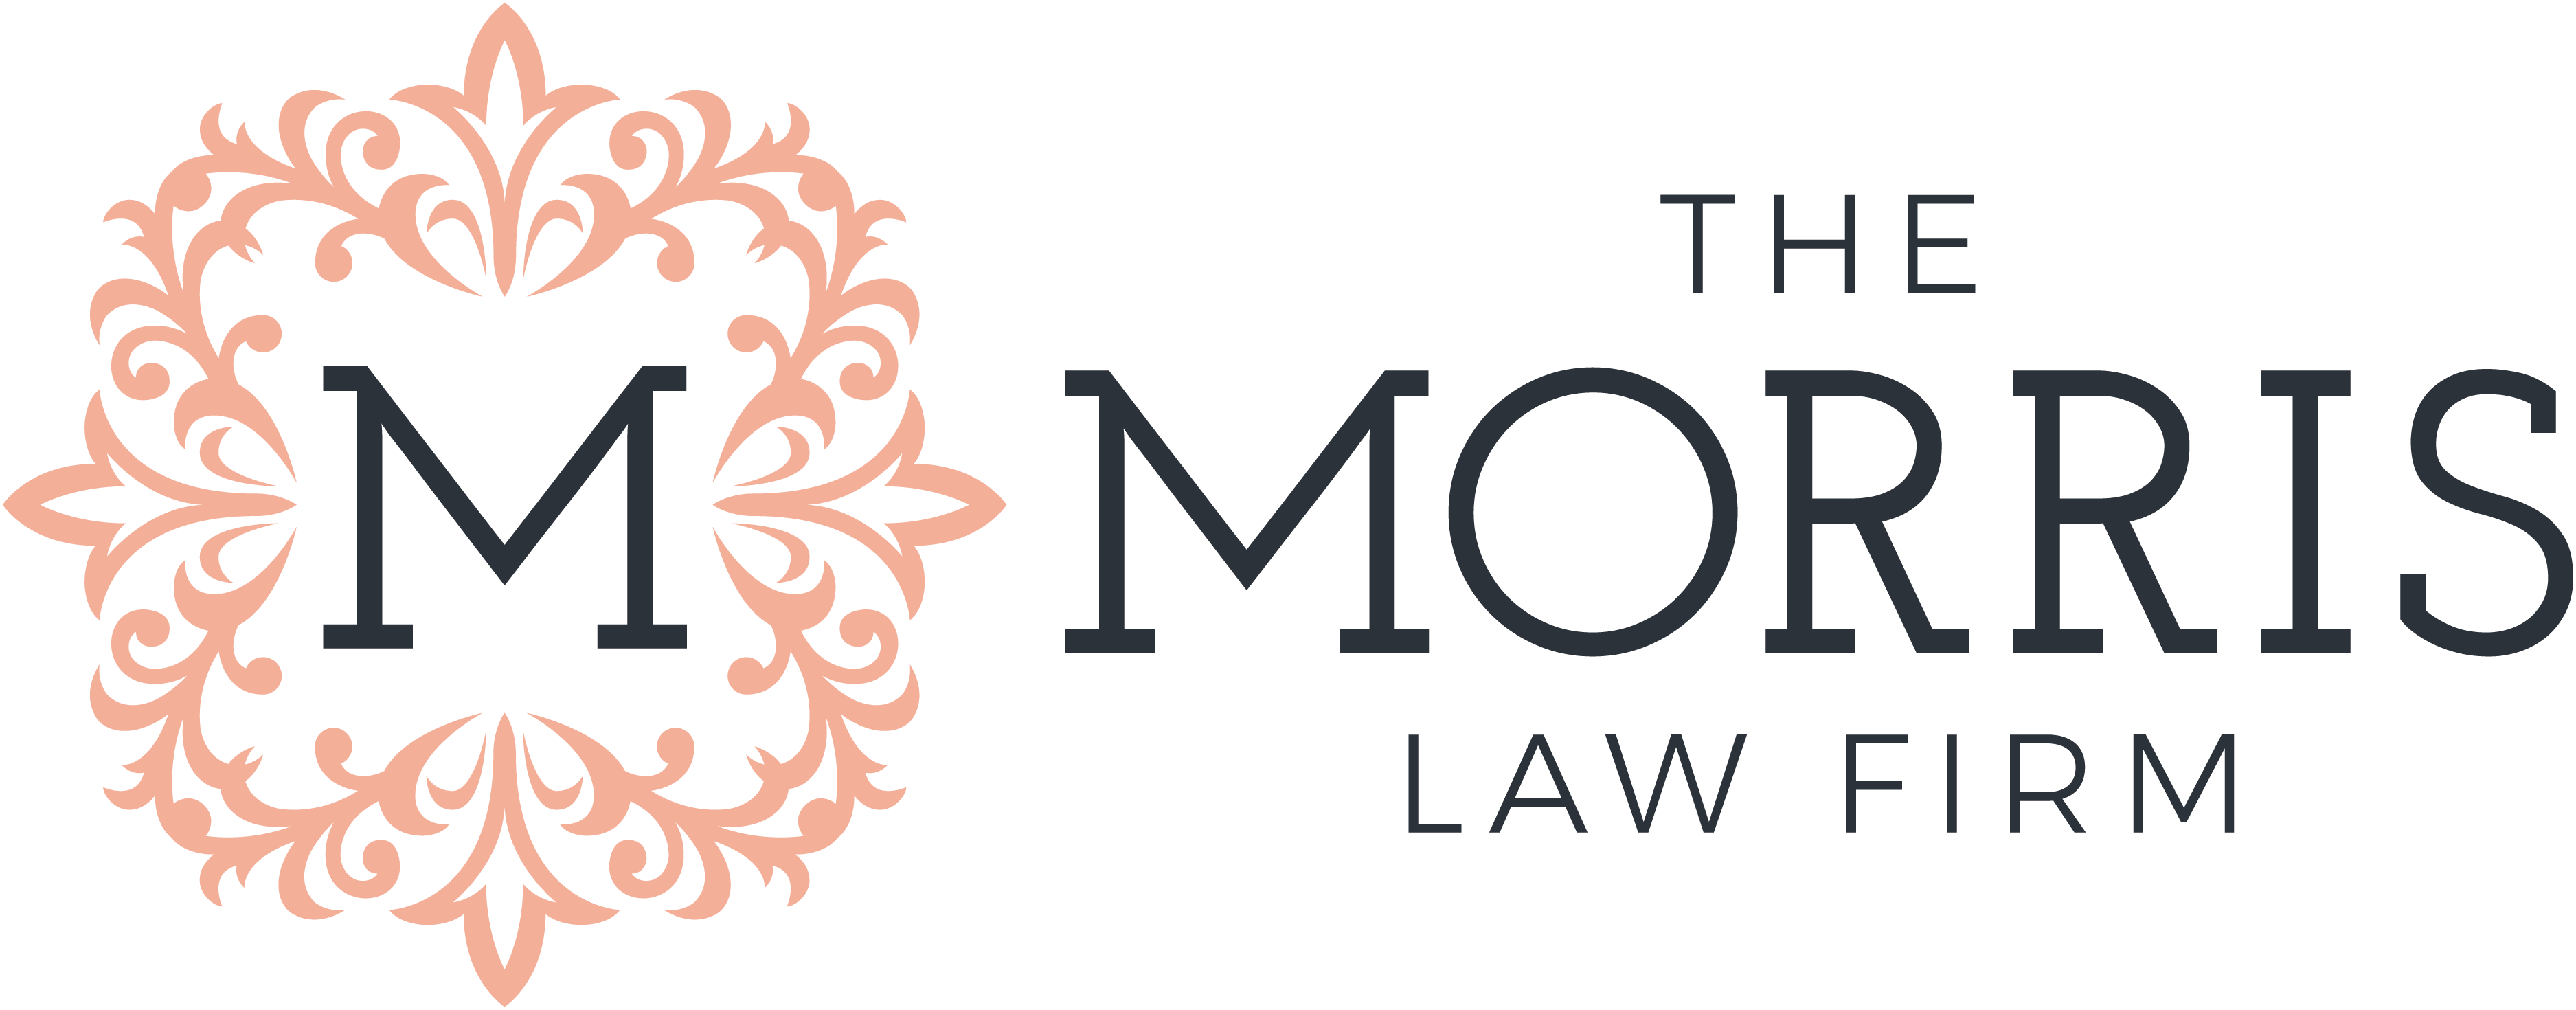 The Morris Law Firm